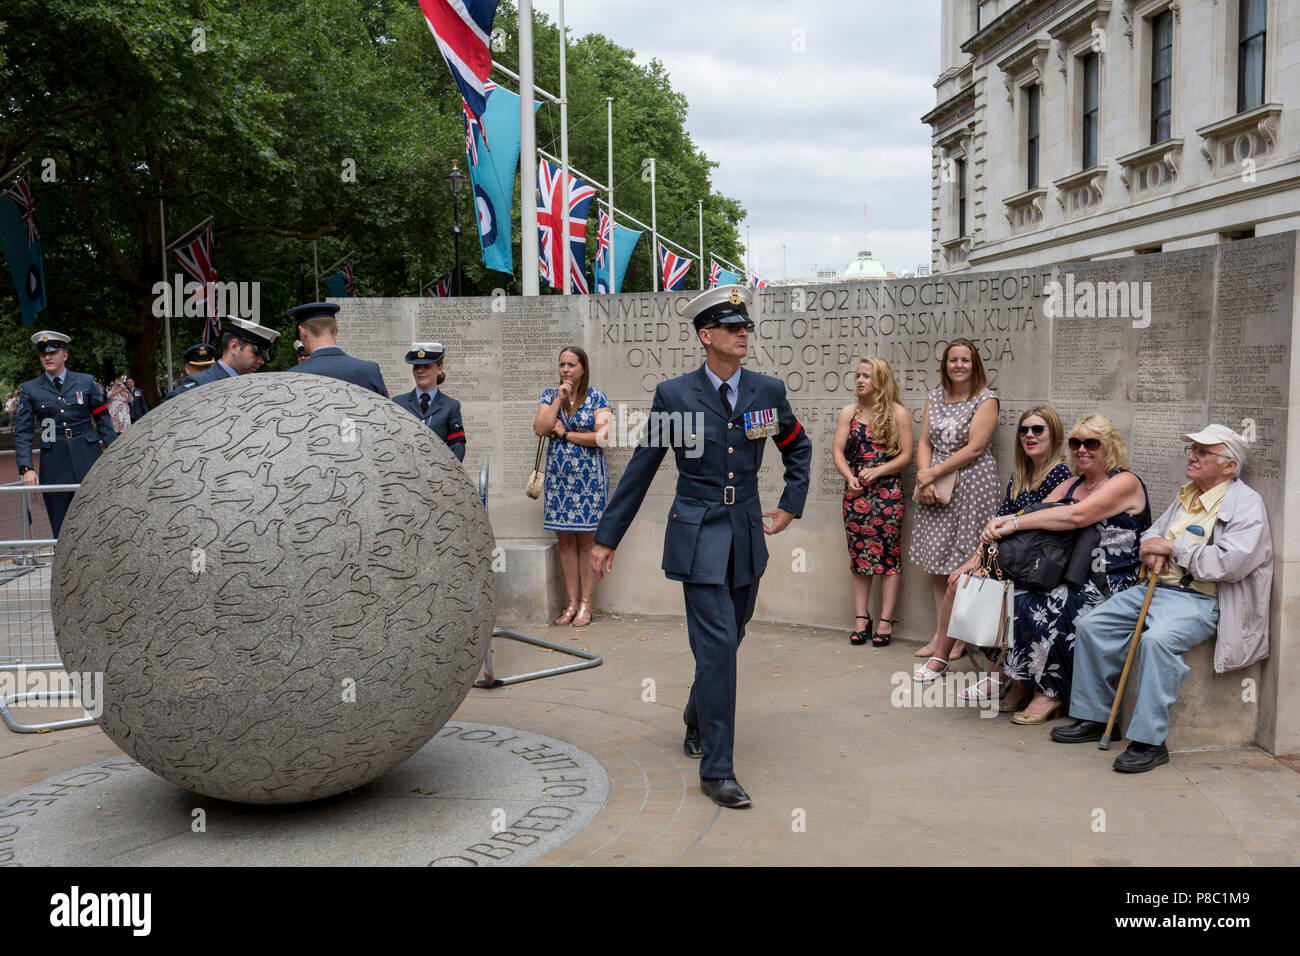 On the 100th anniversary of the Royal Air Force (RAF) and following a flypast of 100 aircraft formations representing Britain's air defence history which flew over central London, a serviceman leaves Horseguards, passing the memorial to those killed in the 2002 Bali bombing, on 10th July 2018, in London, England. (Photo by Richard Baker / In Pictures via Getty Images) - Stock Image